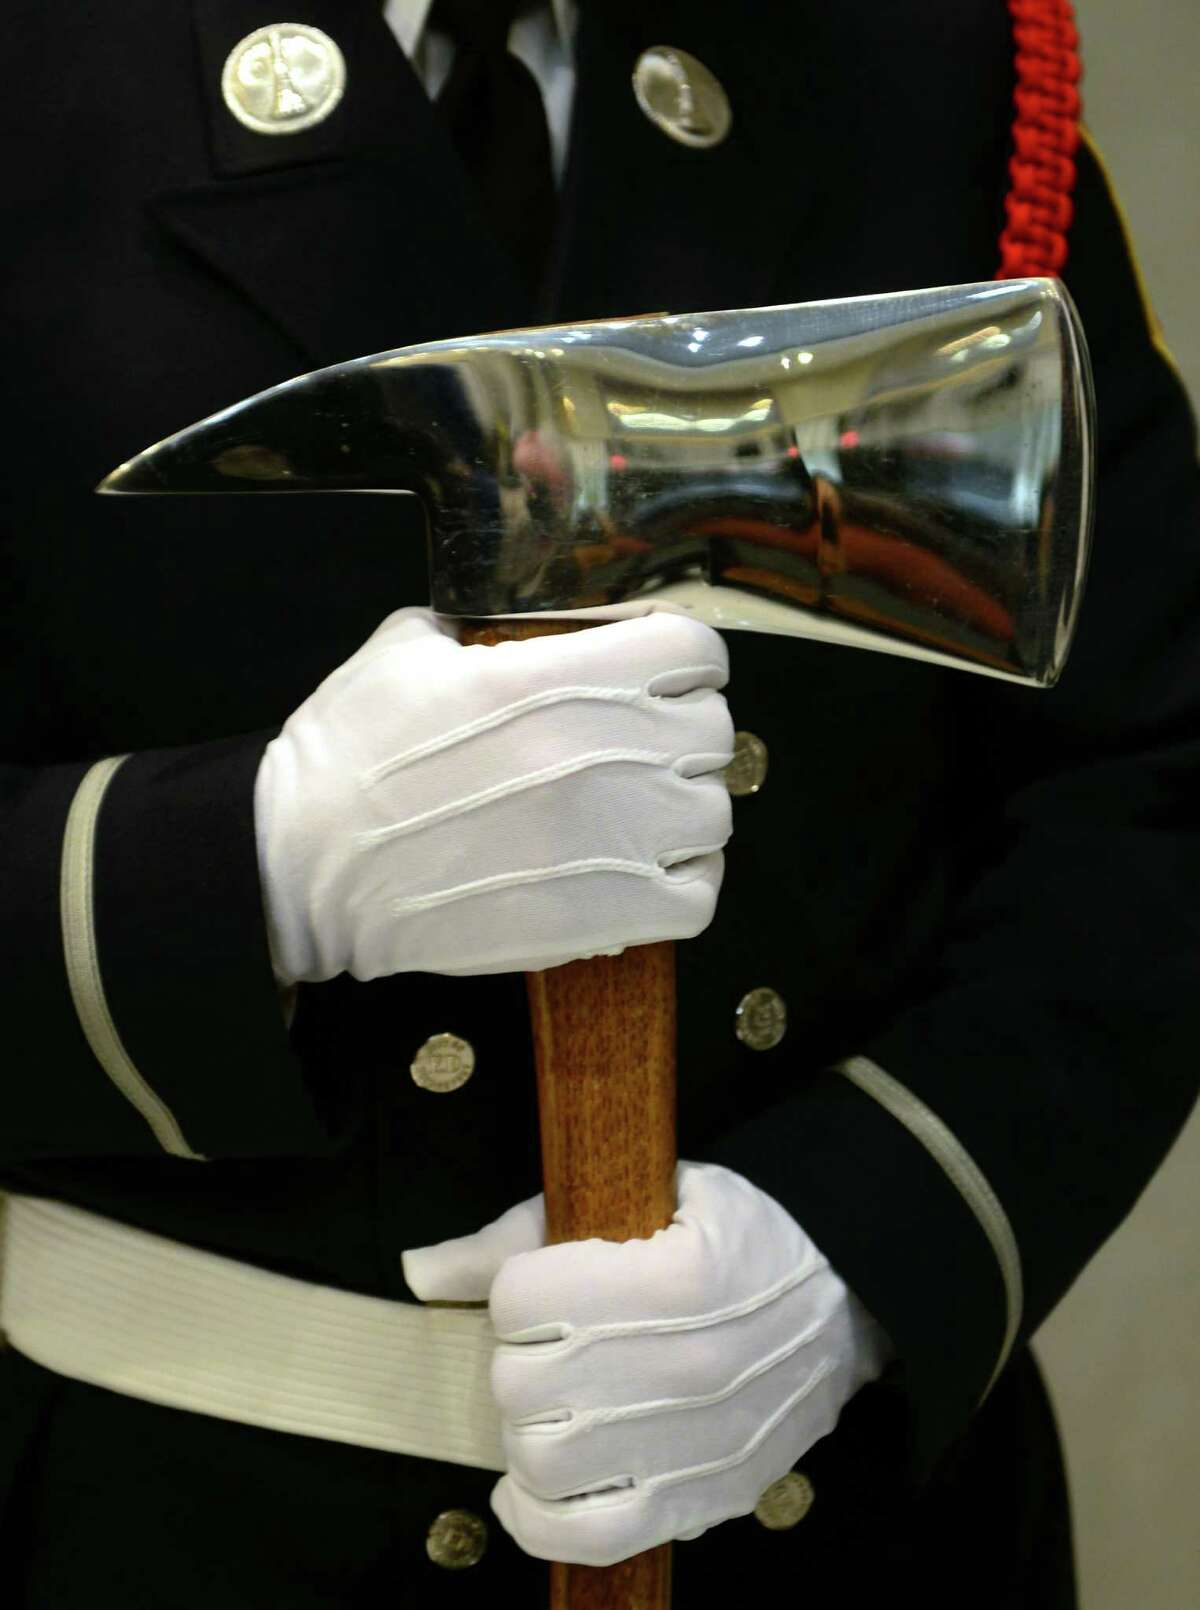 A Swearing In Ceremony for 22 new Bridgeport firefighters was held at Bridgeport City Hall in Bridgeport, Conn. on Dec. 16, 2016. Led by Mayor Joe Ganim, the city graduates the new firefighters from State Fire Academy.